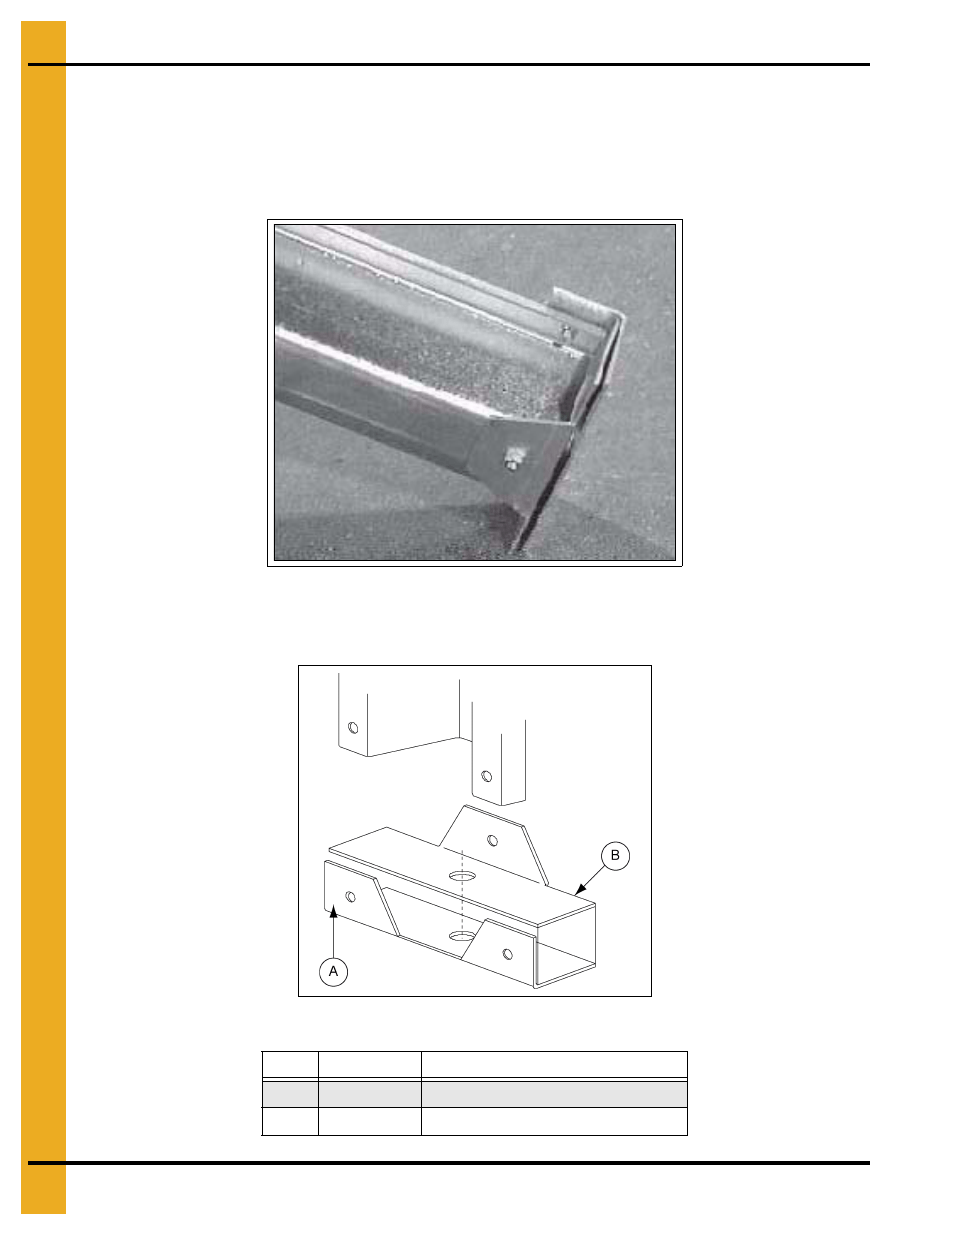 medium resolution of legs and leg bracing chapter 13 legs and leg bracing tank legs and leg braces grain systems tanks pneg 1460 user manual page 68 106